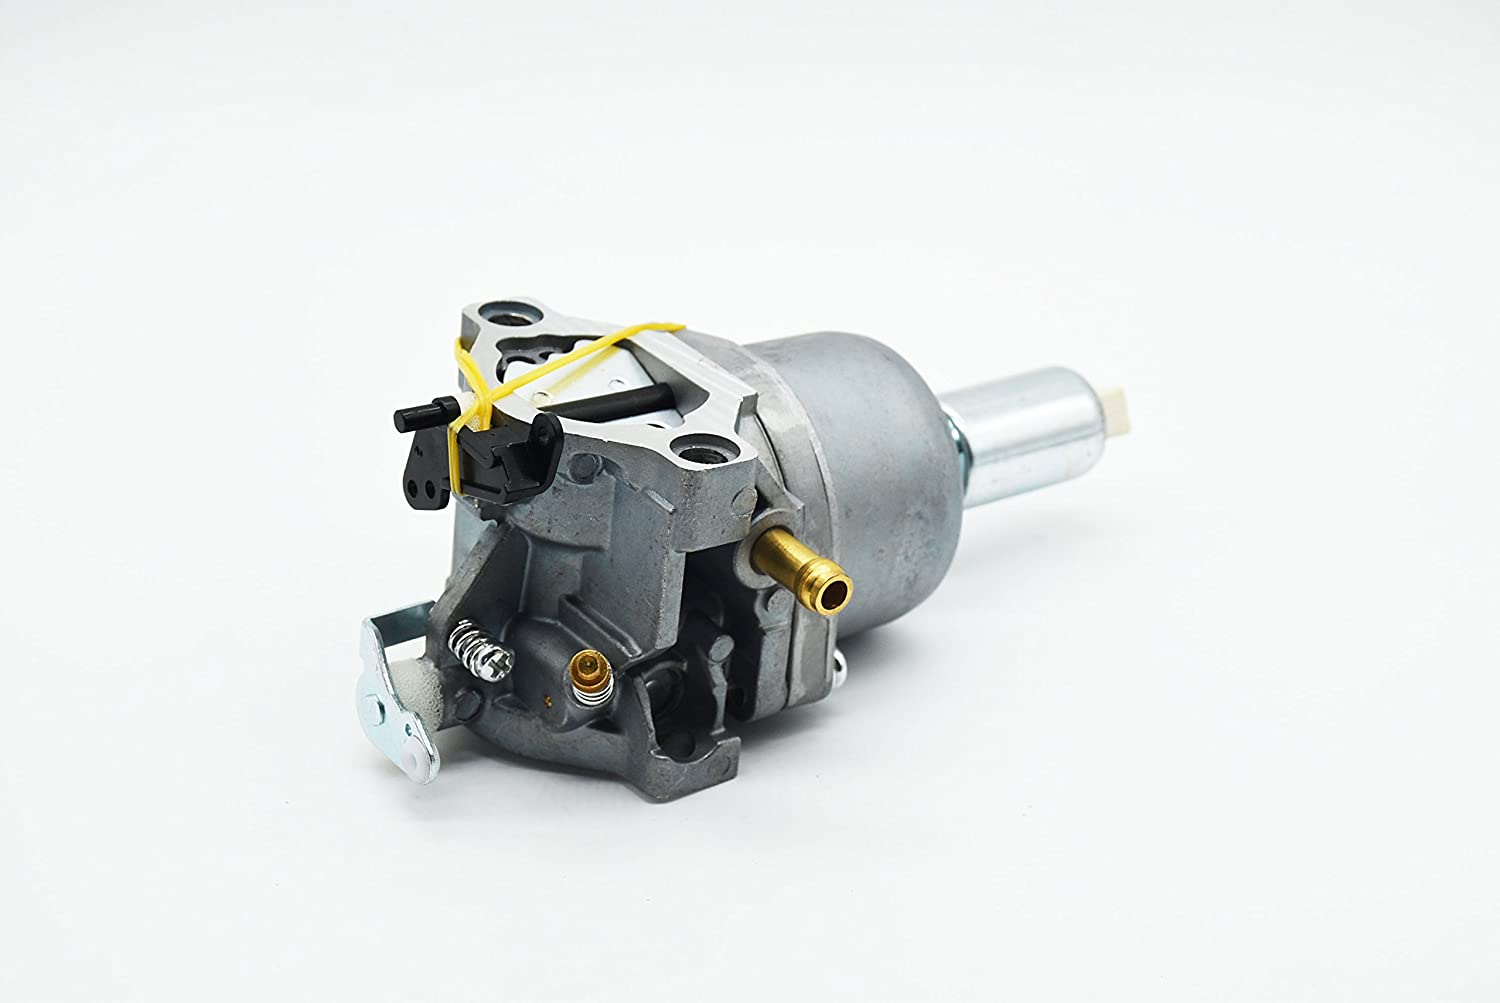 Carbman 799727 Carburetor Replacement for Briggs and Stratton ...